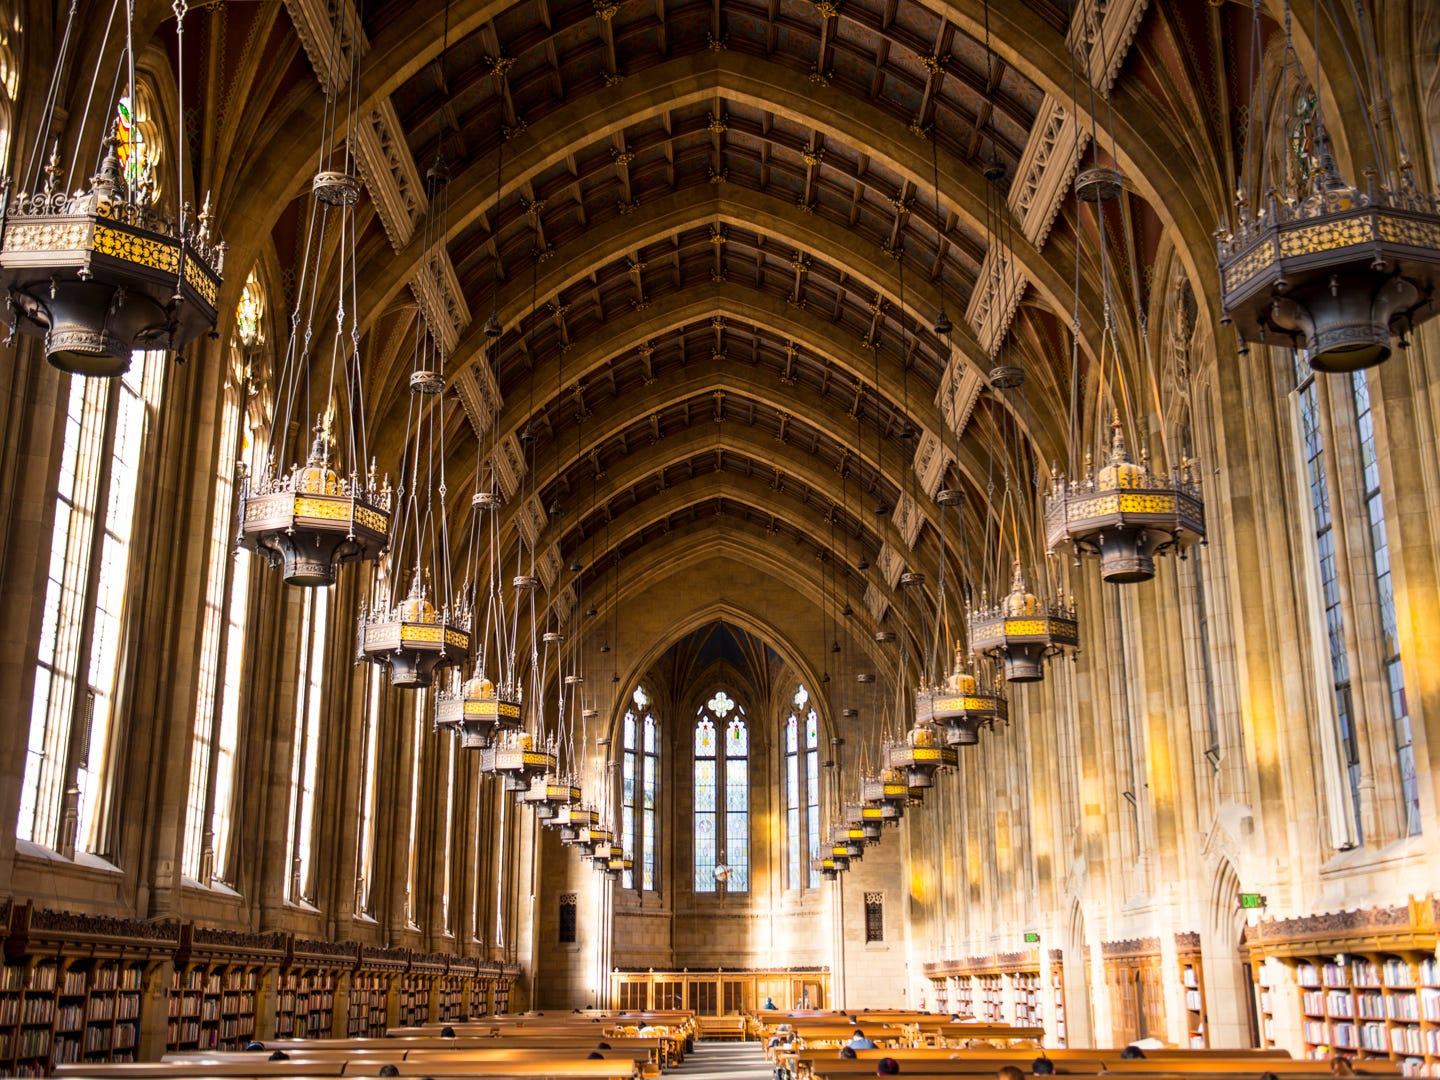 Washington: The famous reading room in Suzzallo Library at the University of Washington.